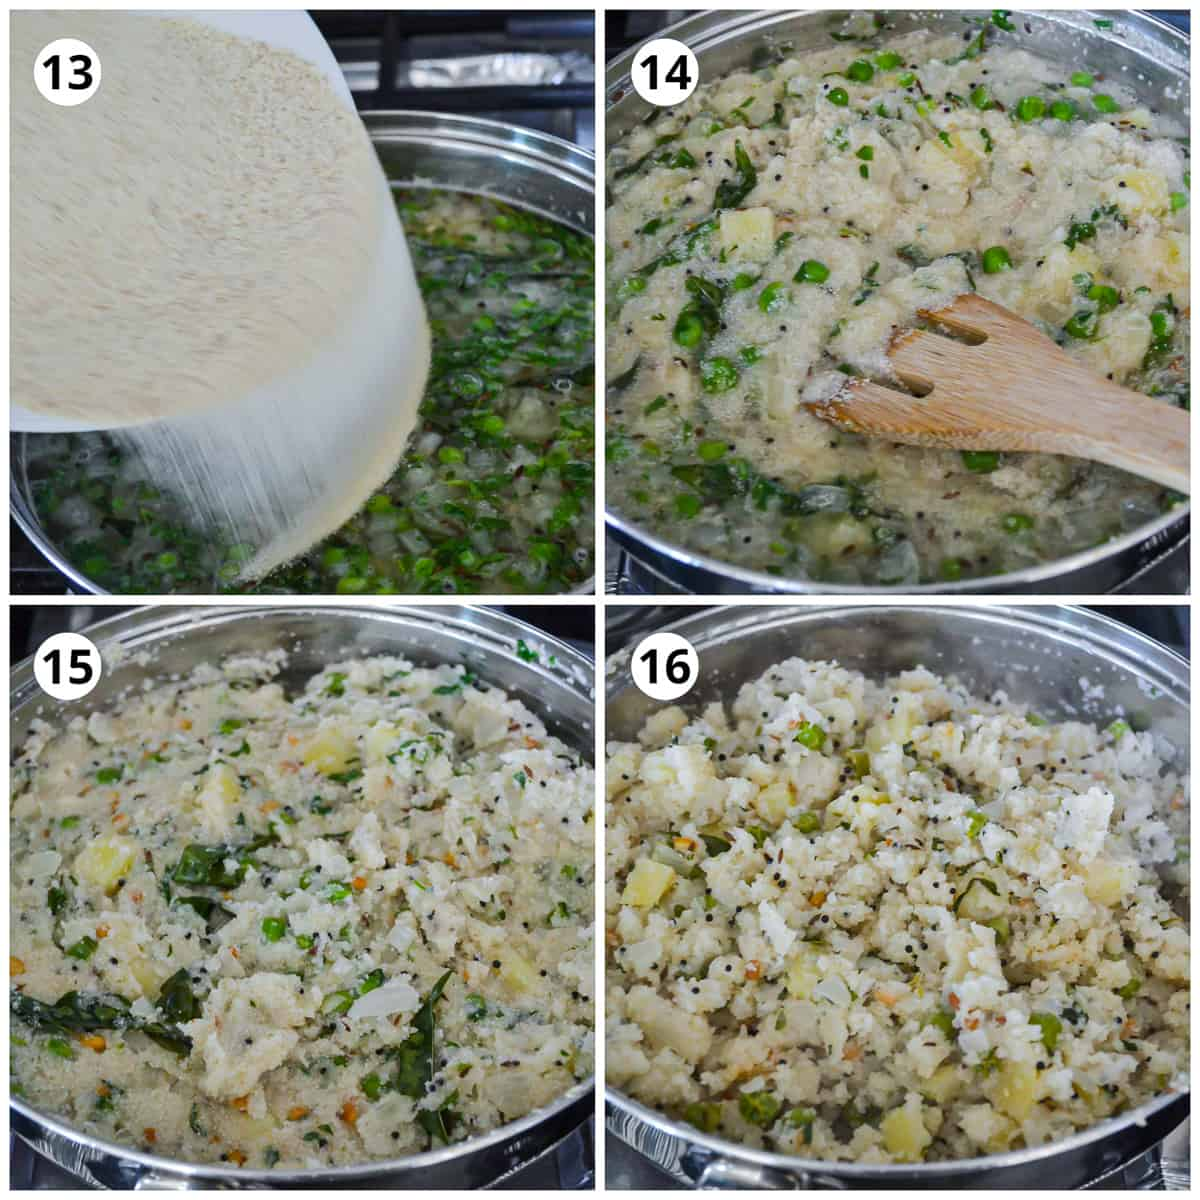 Adding the roasted semolina to the pot and finishing the dish